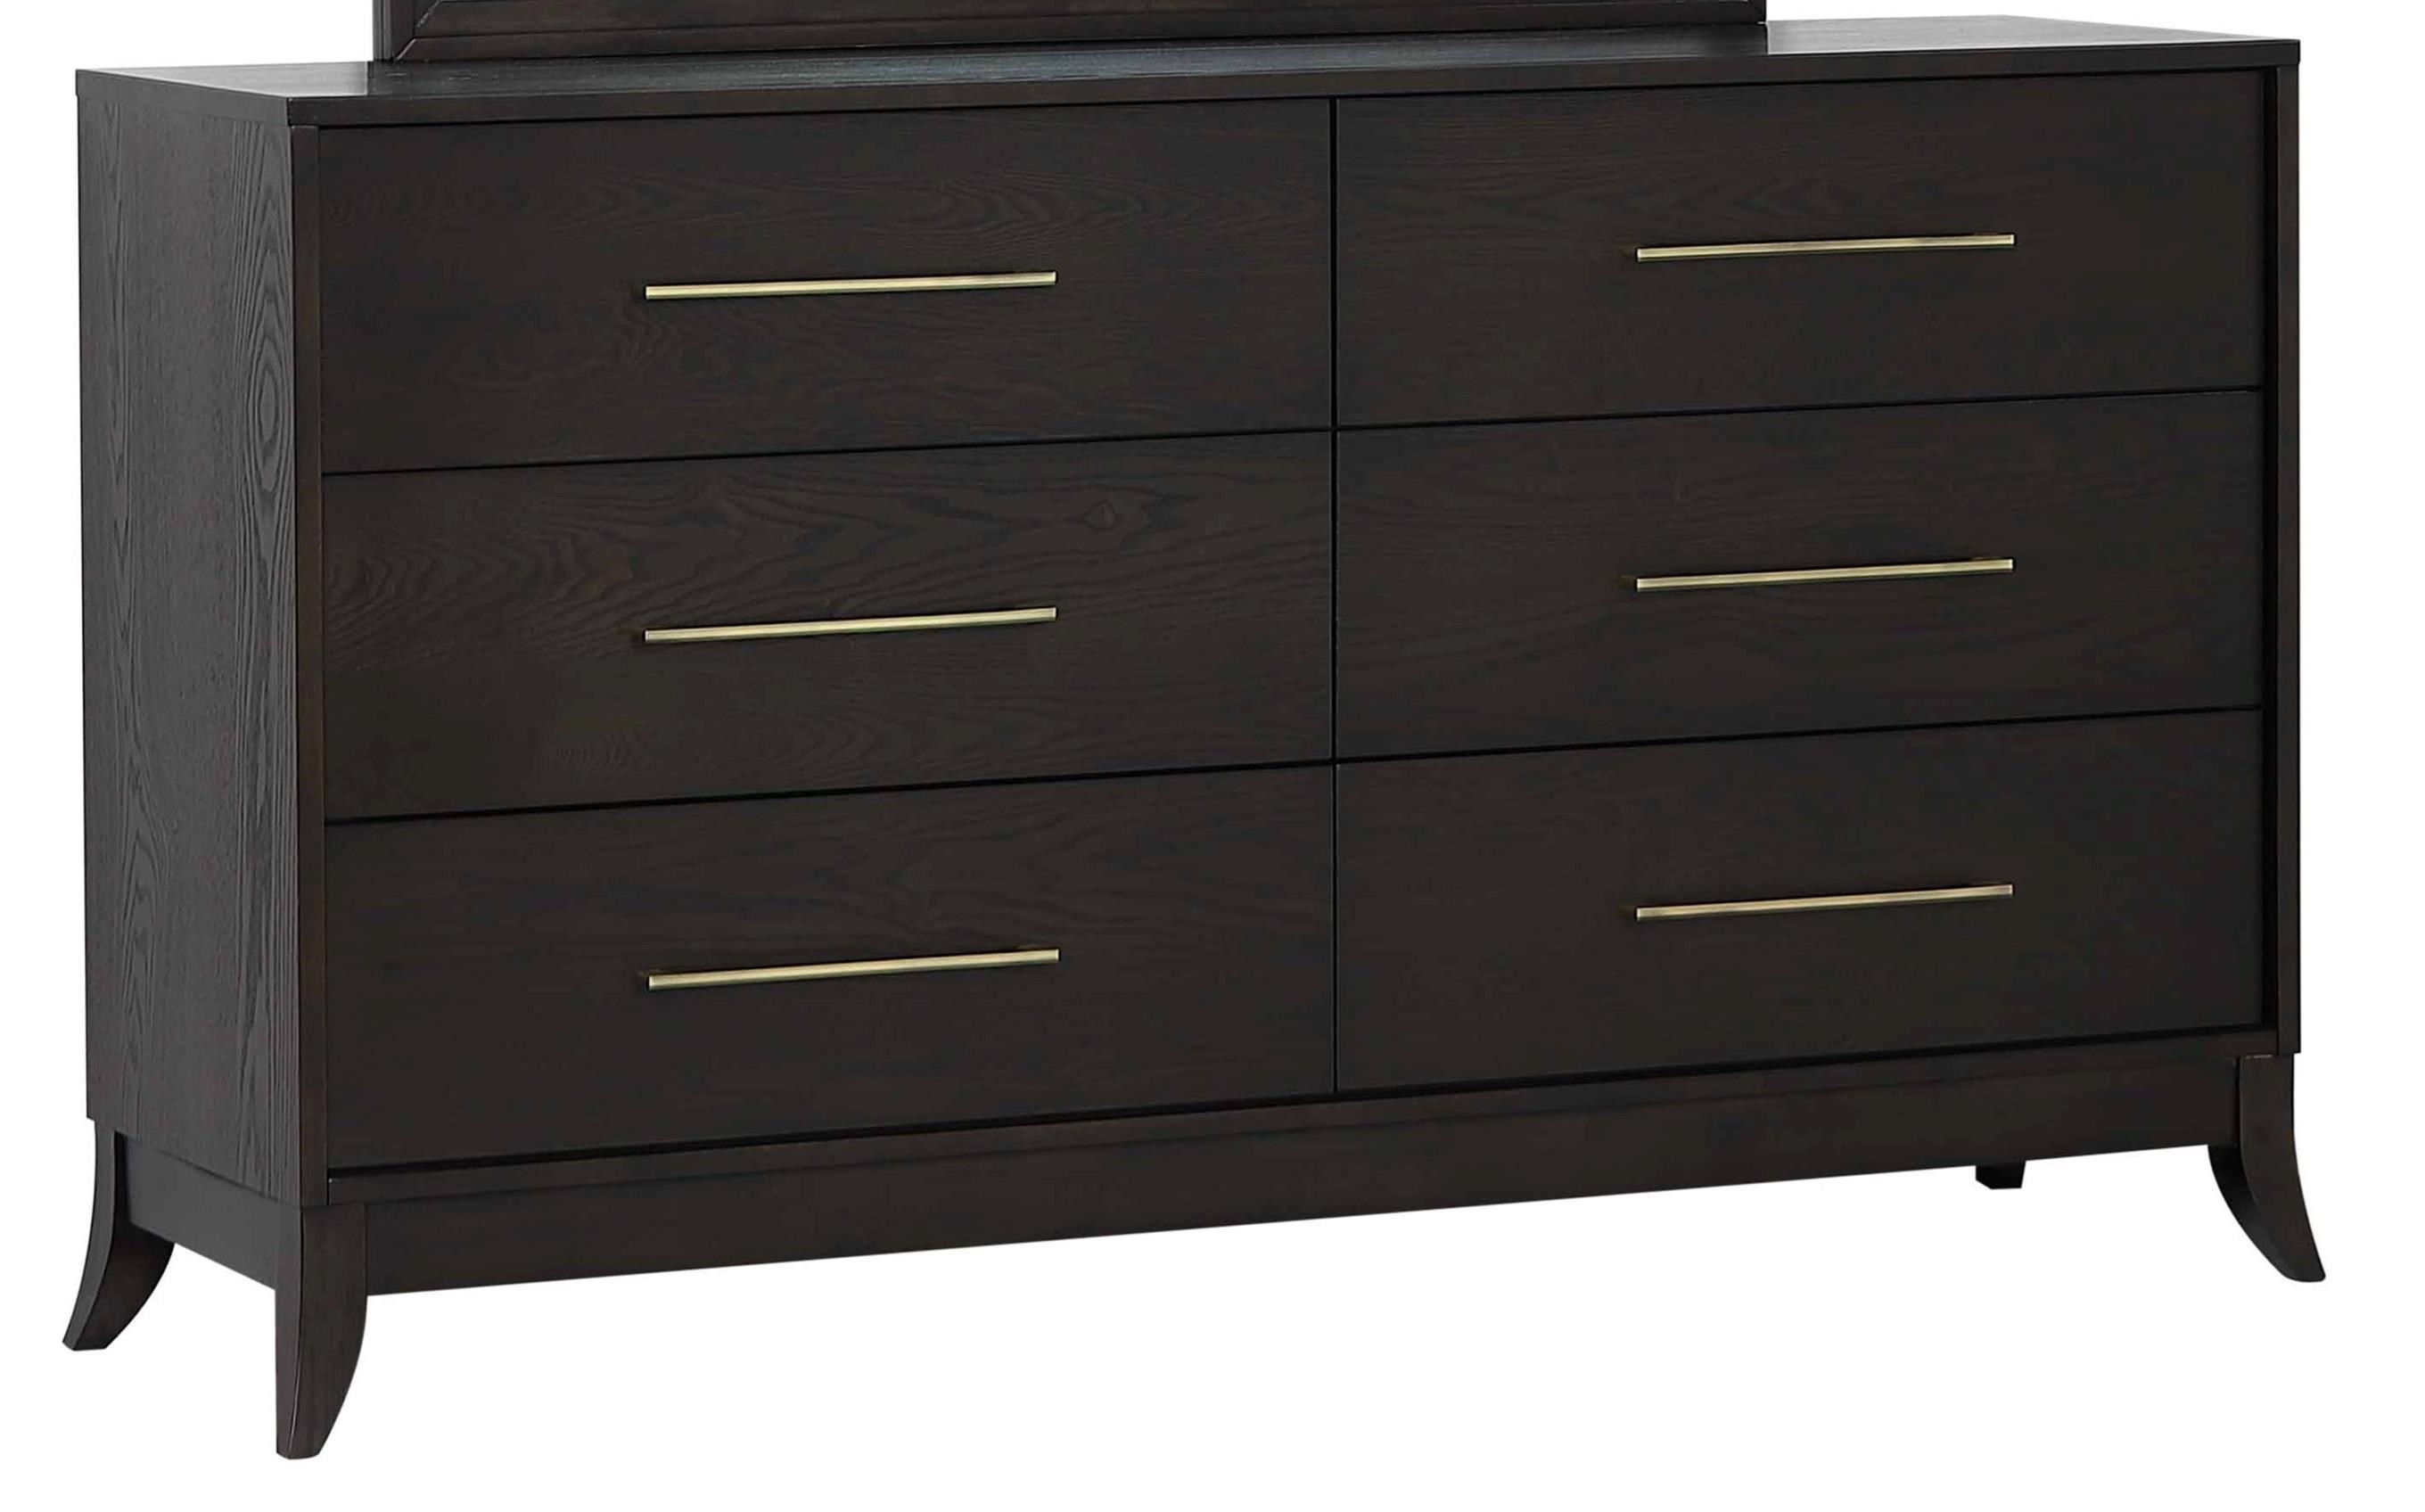 Logan Square Dresser by New Classic at Furniture Superstore - Rochester, MN